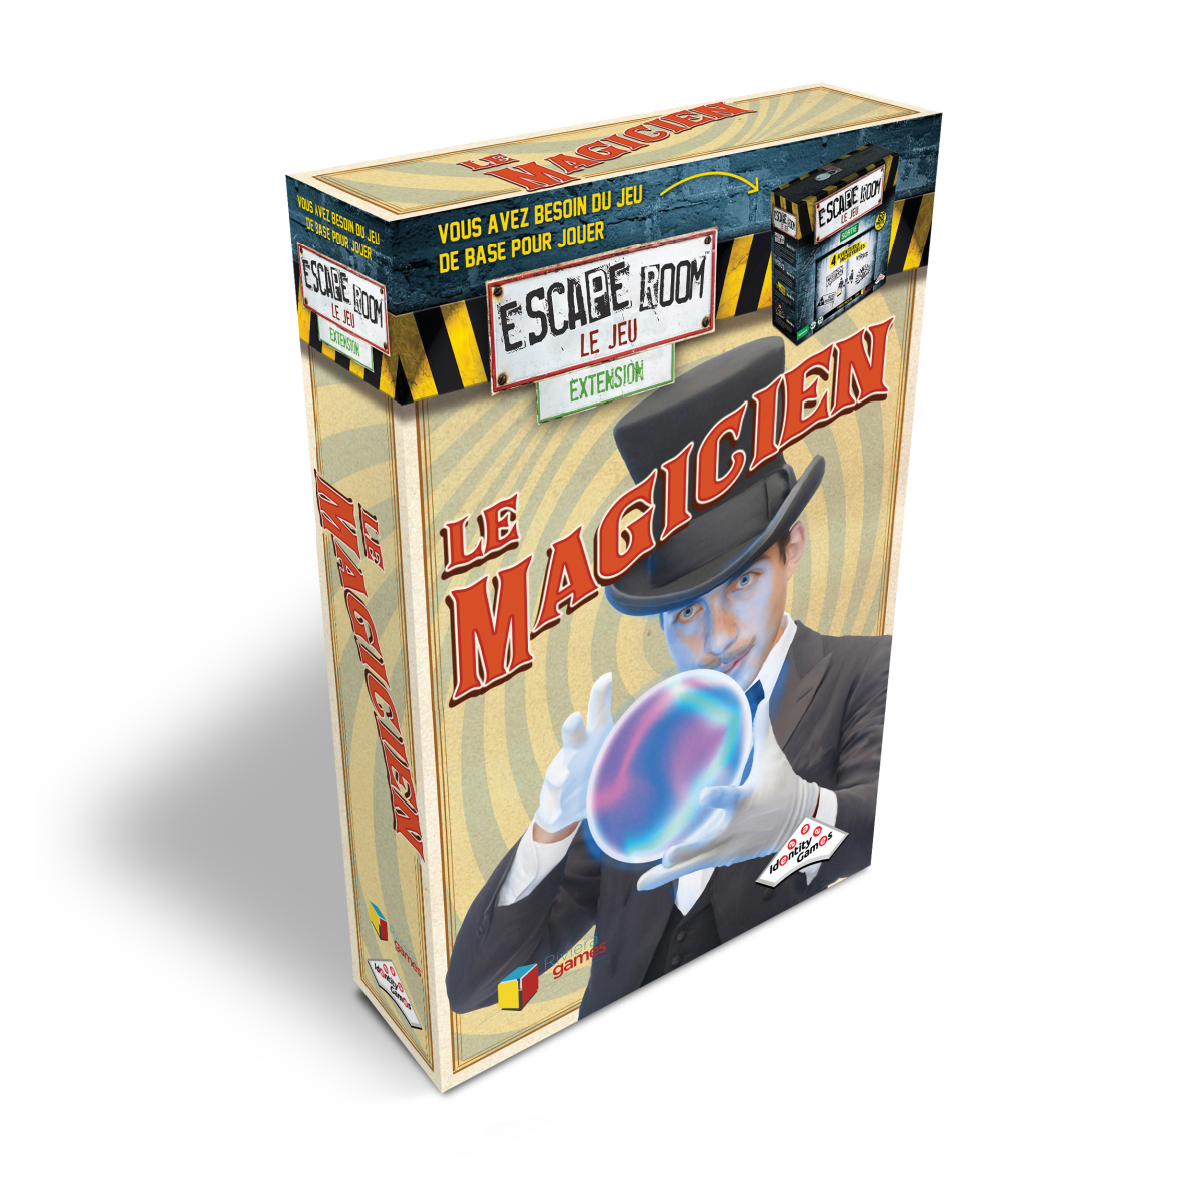 Escape Room Extension - Le Magicien | 21,99$